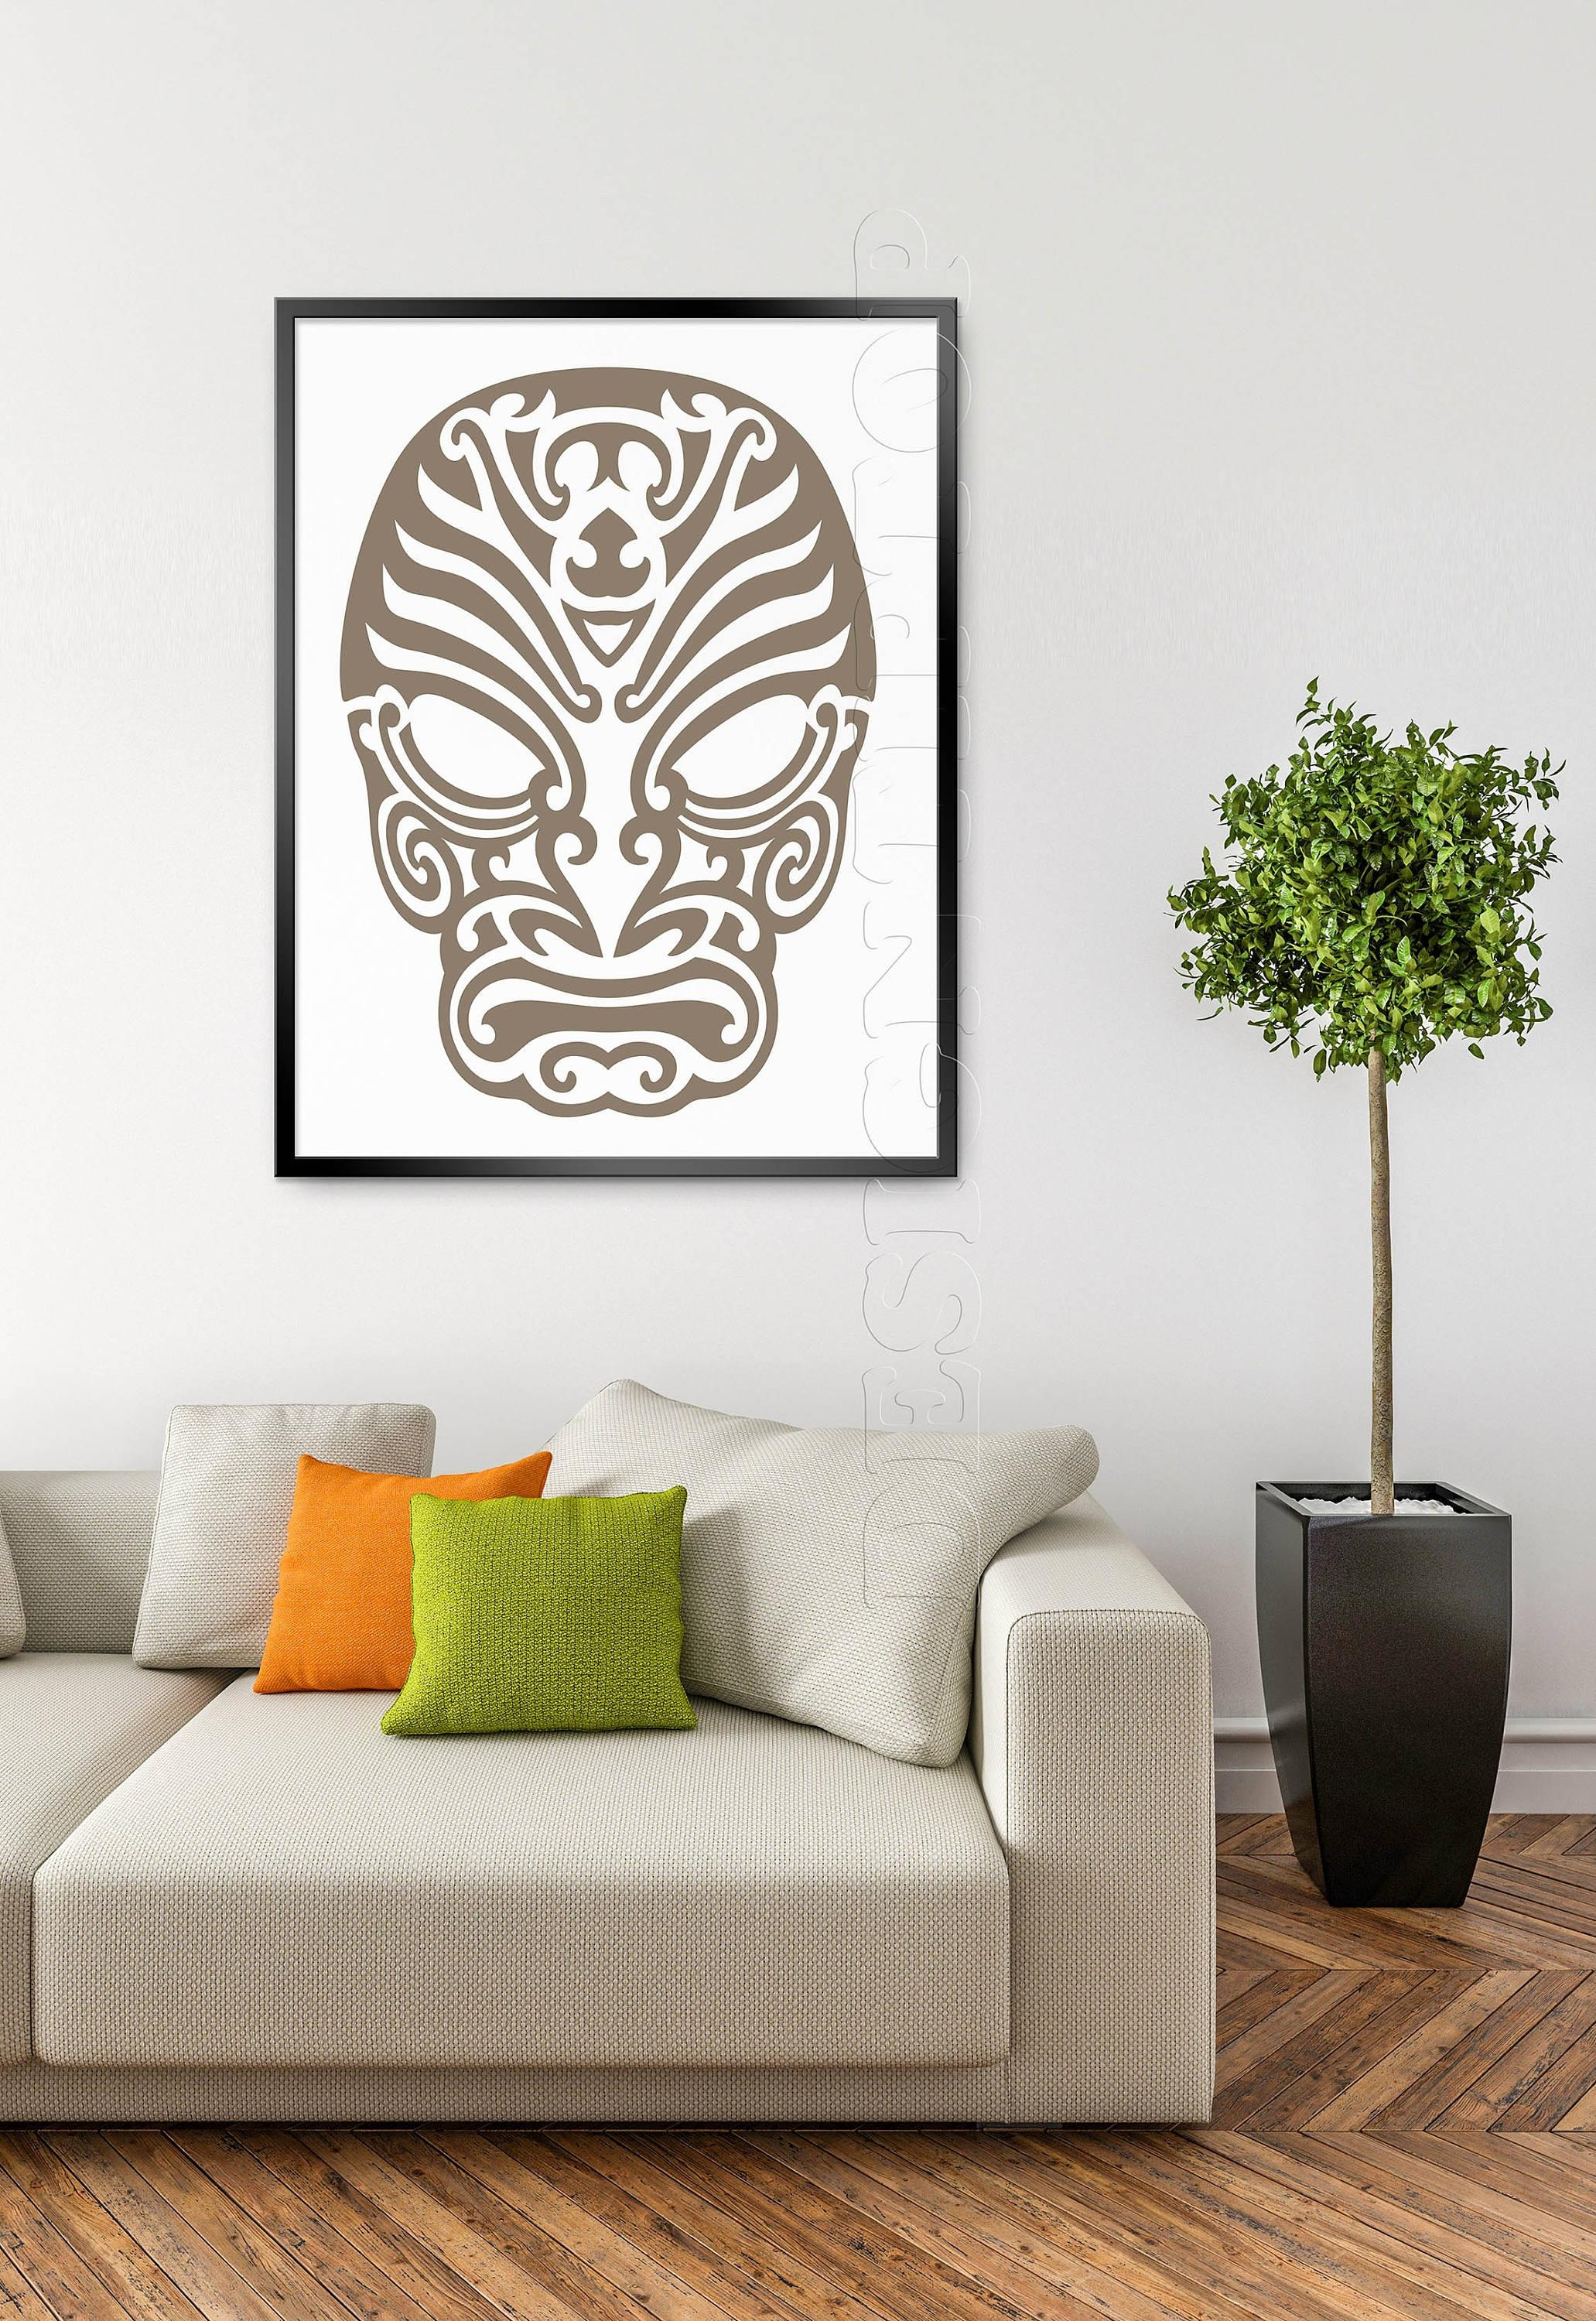 Mask Svg, Polynesian Tattoo, Tshirt Design, Cuttable Svg, Vinyl Regarding Polynesian Wall Art (Image 4 of 20)